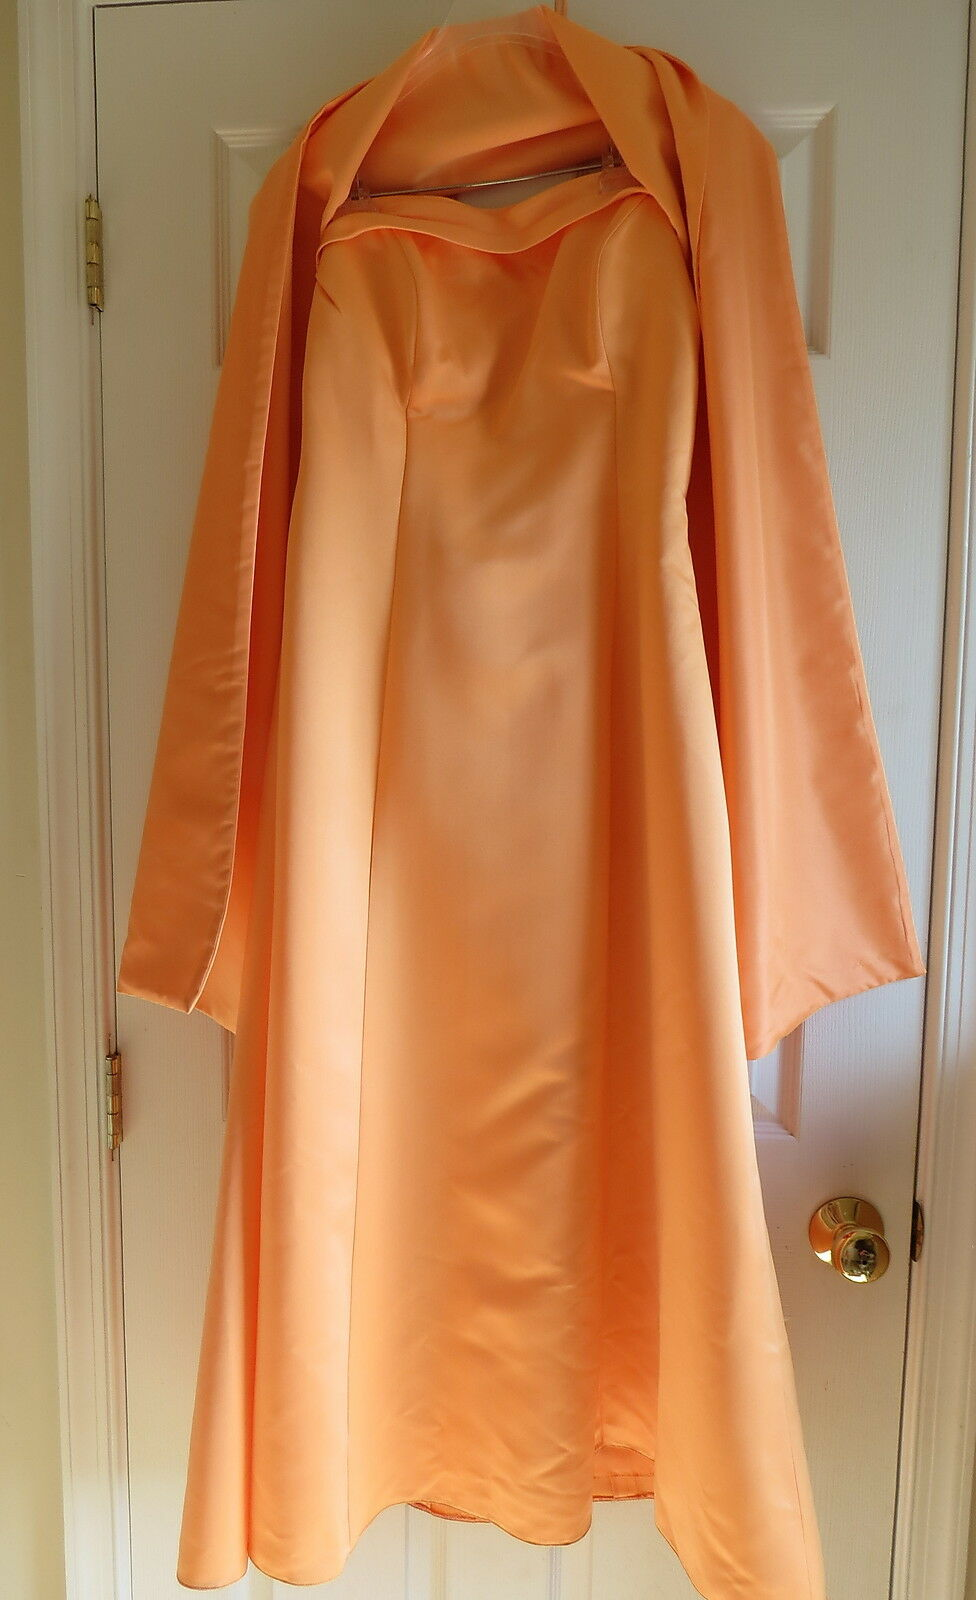 Ladies formal gown Prom Bridal size 14 orange removeable straps with scarf